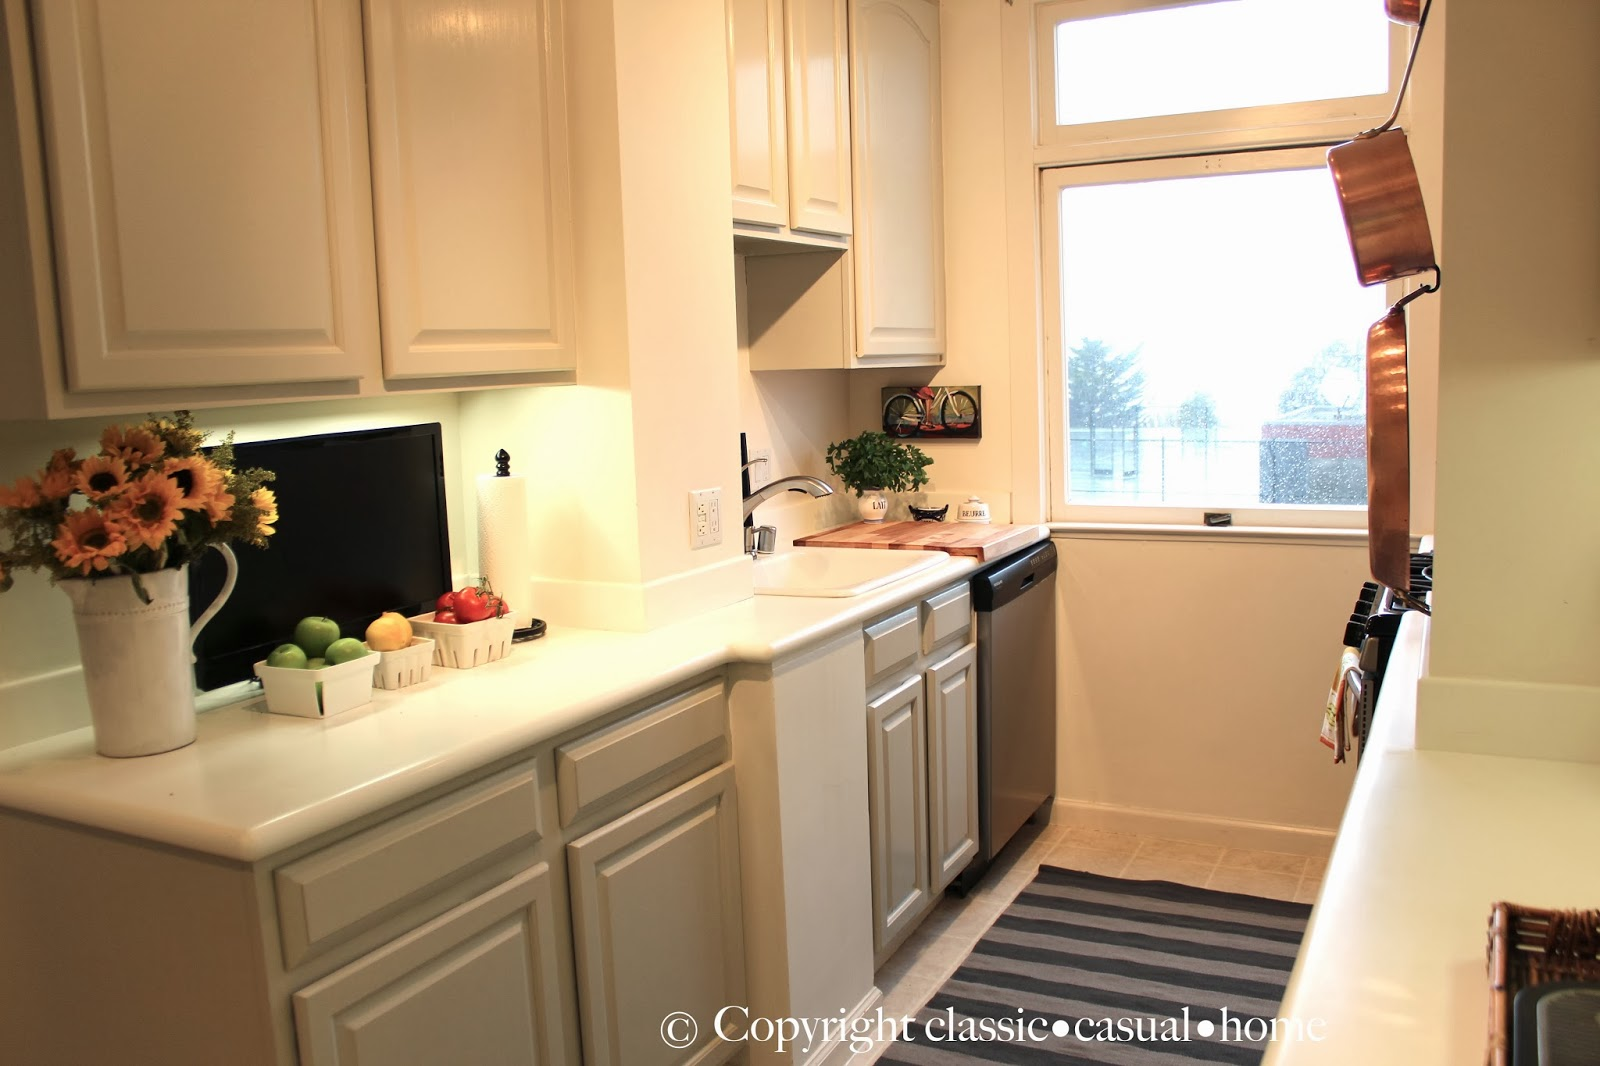 Classic • Casual • Home: Our Galley Kitchen Before And After